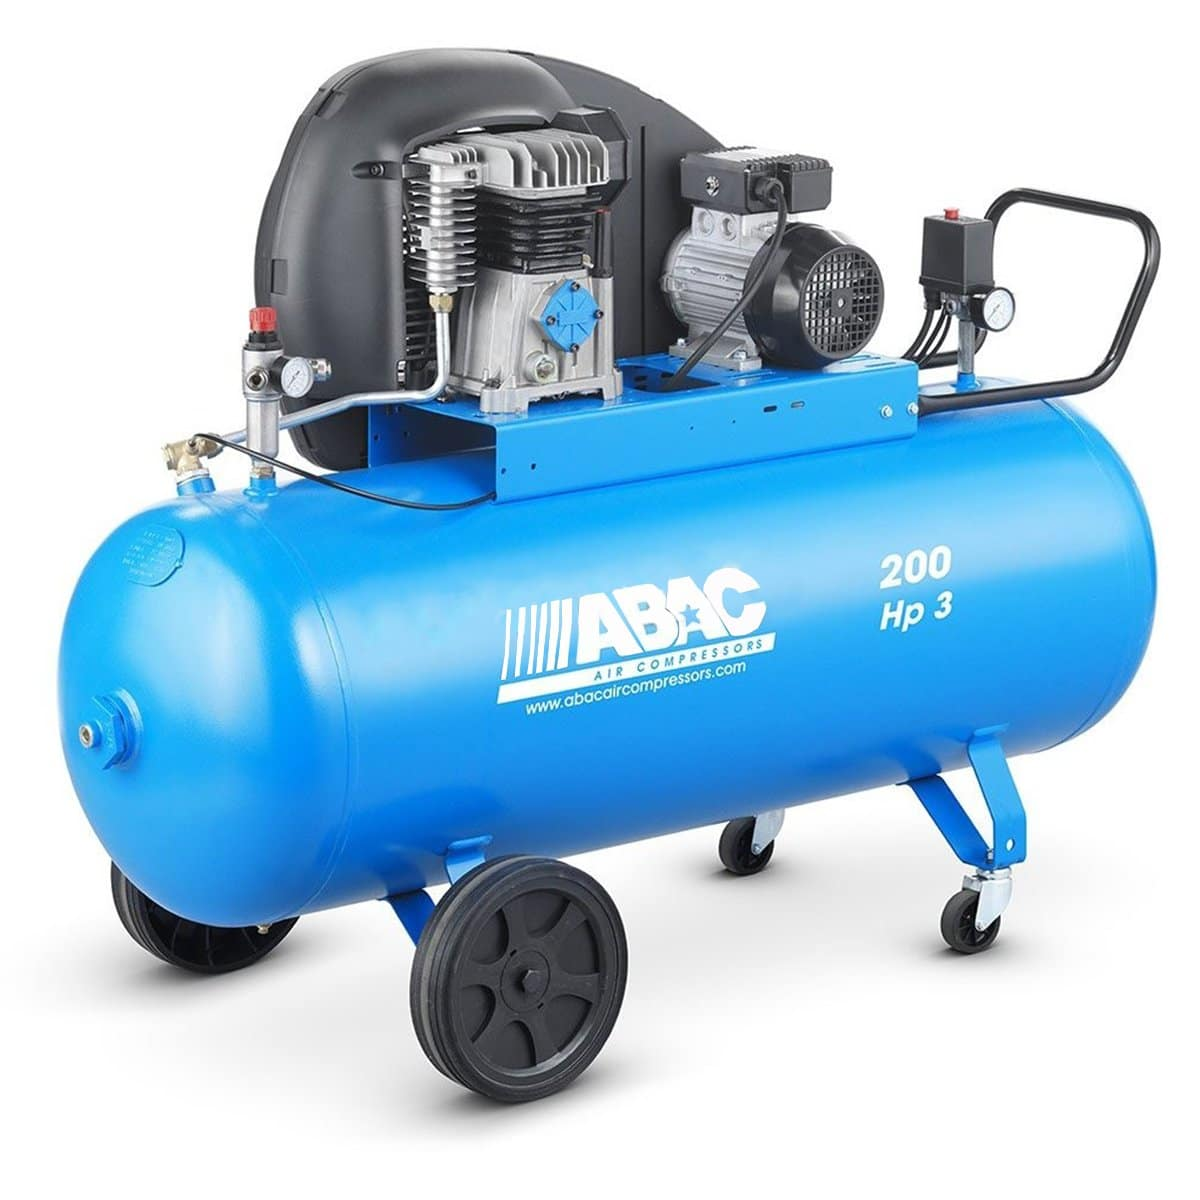 Compressor ABAC A29B 200 CT3 - 200L, 3Hp - 400 V